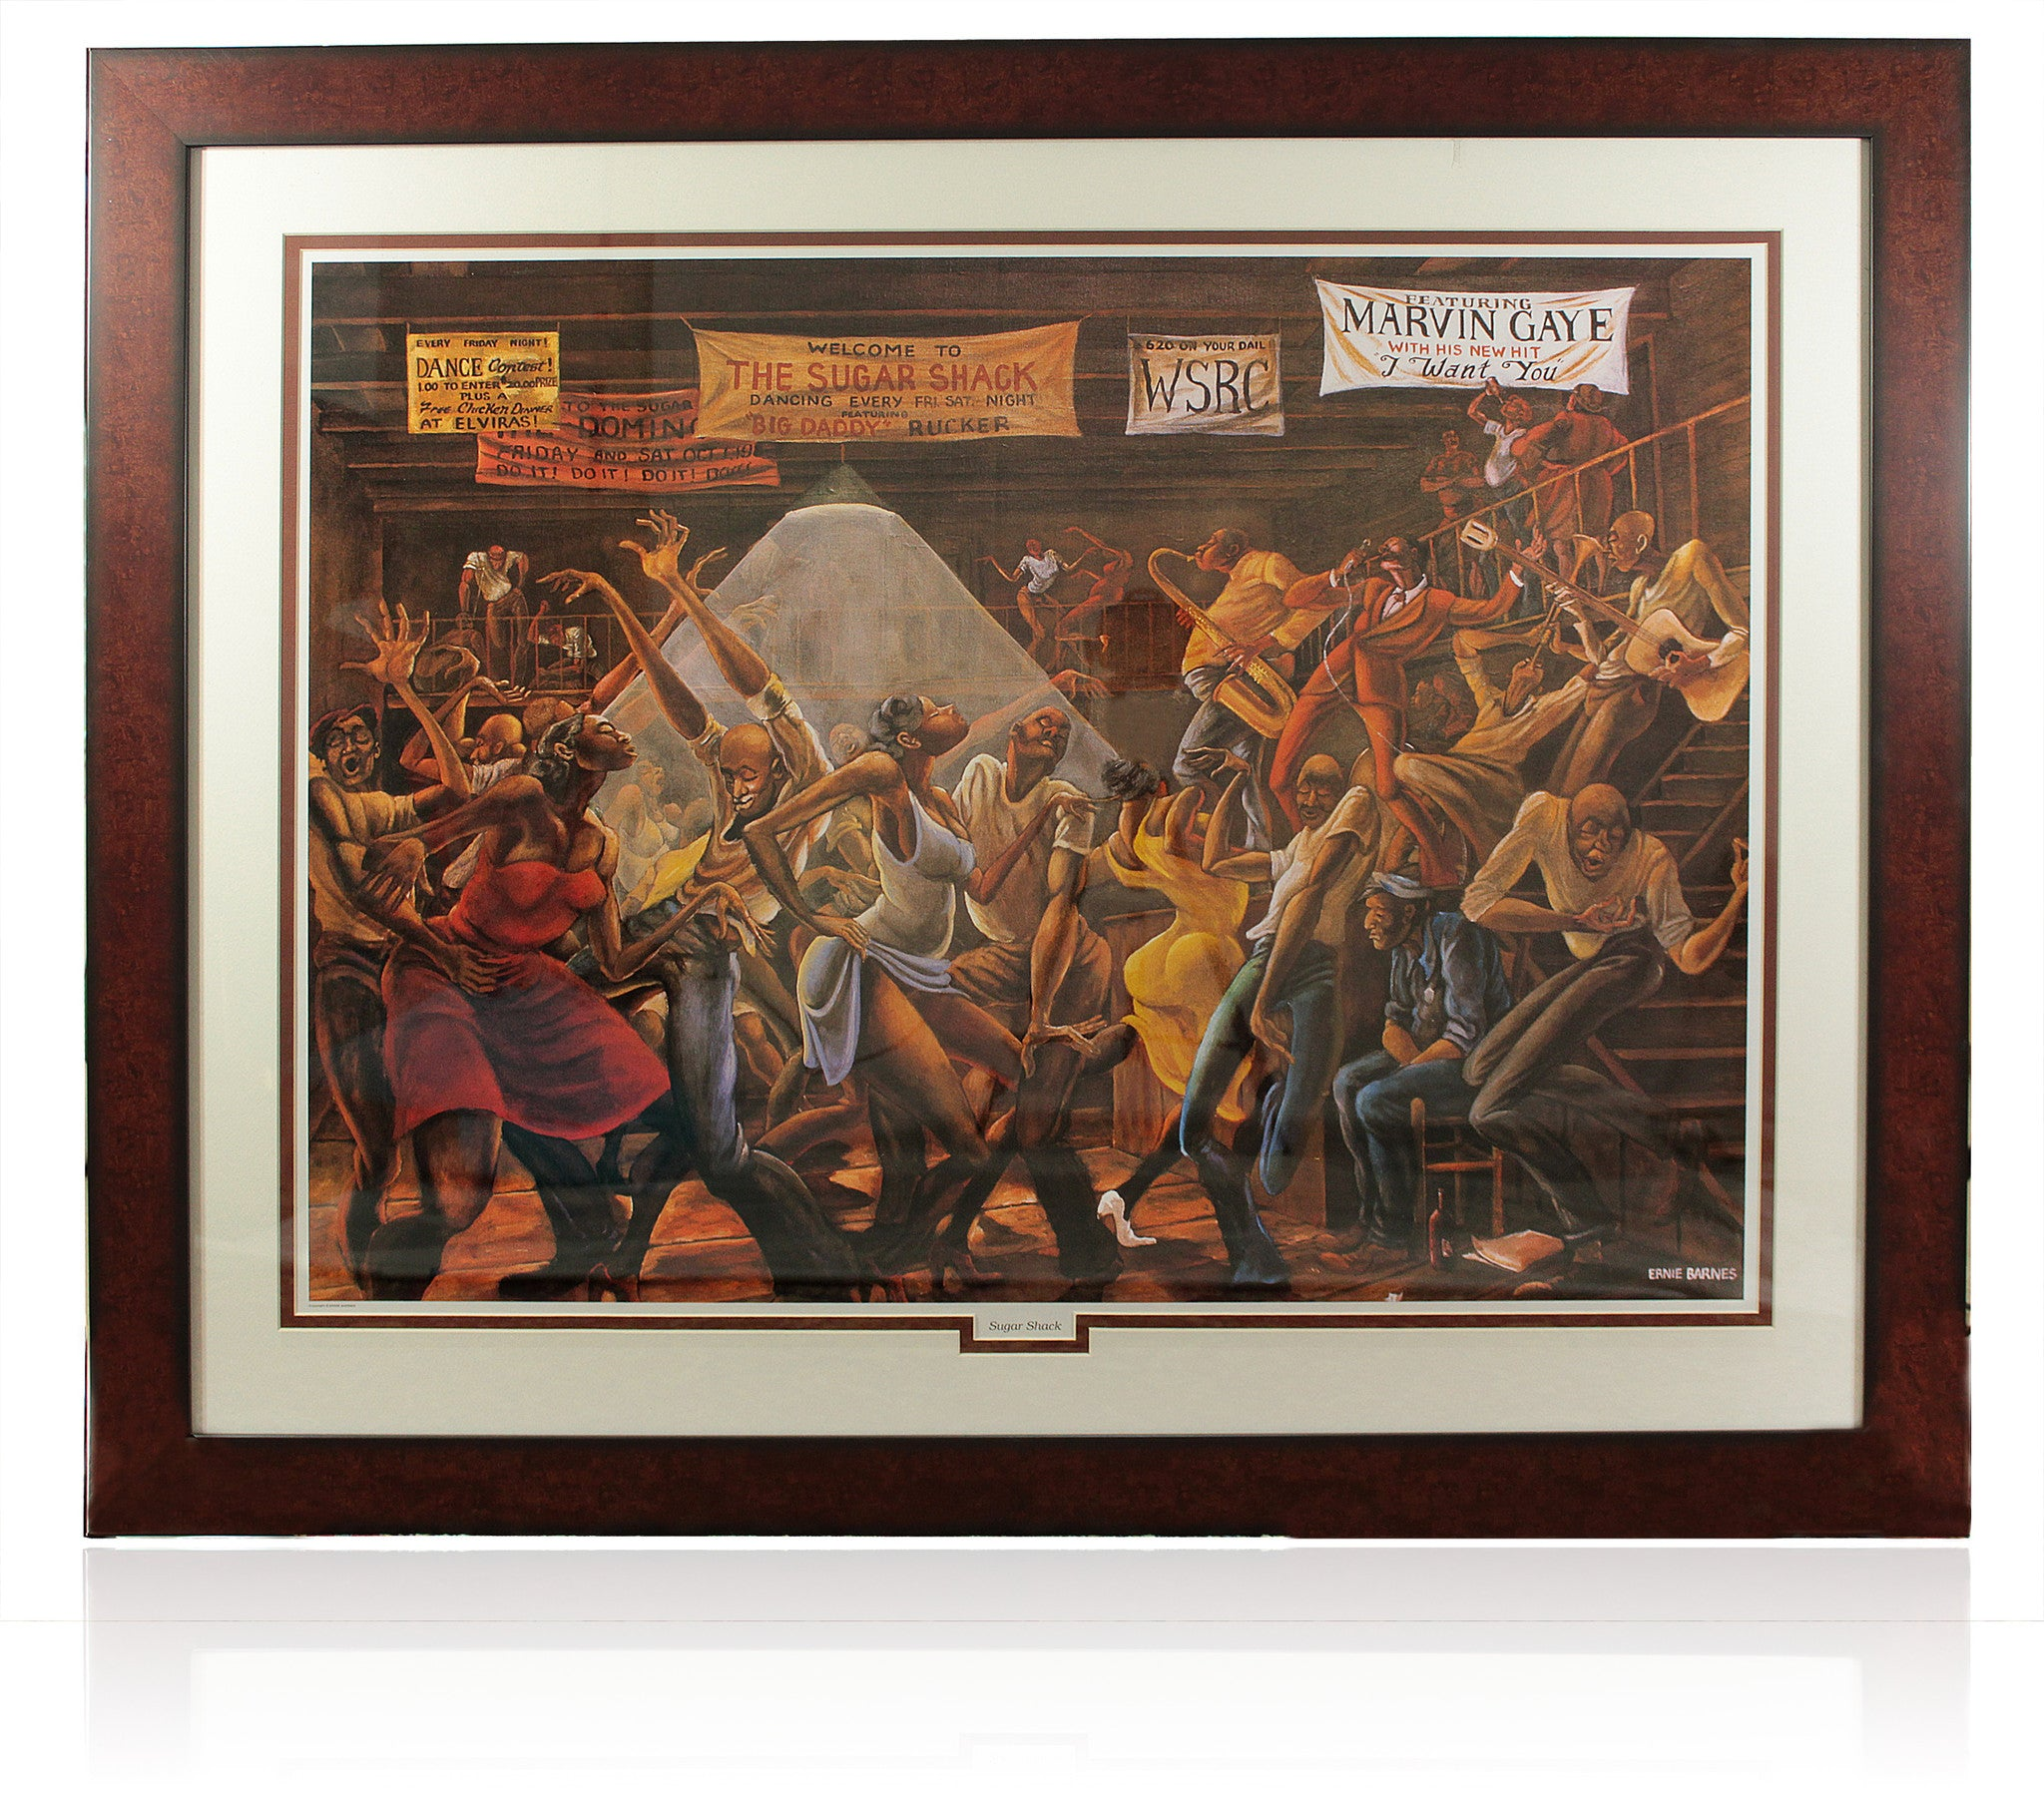 Sugar Shack by Ernie Barnes (Framed)